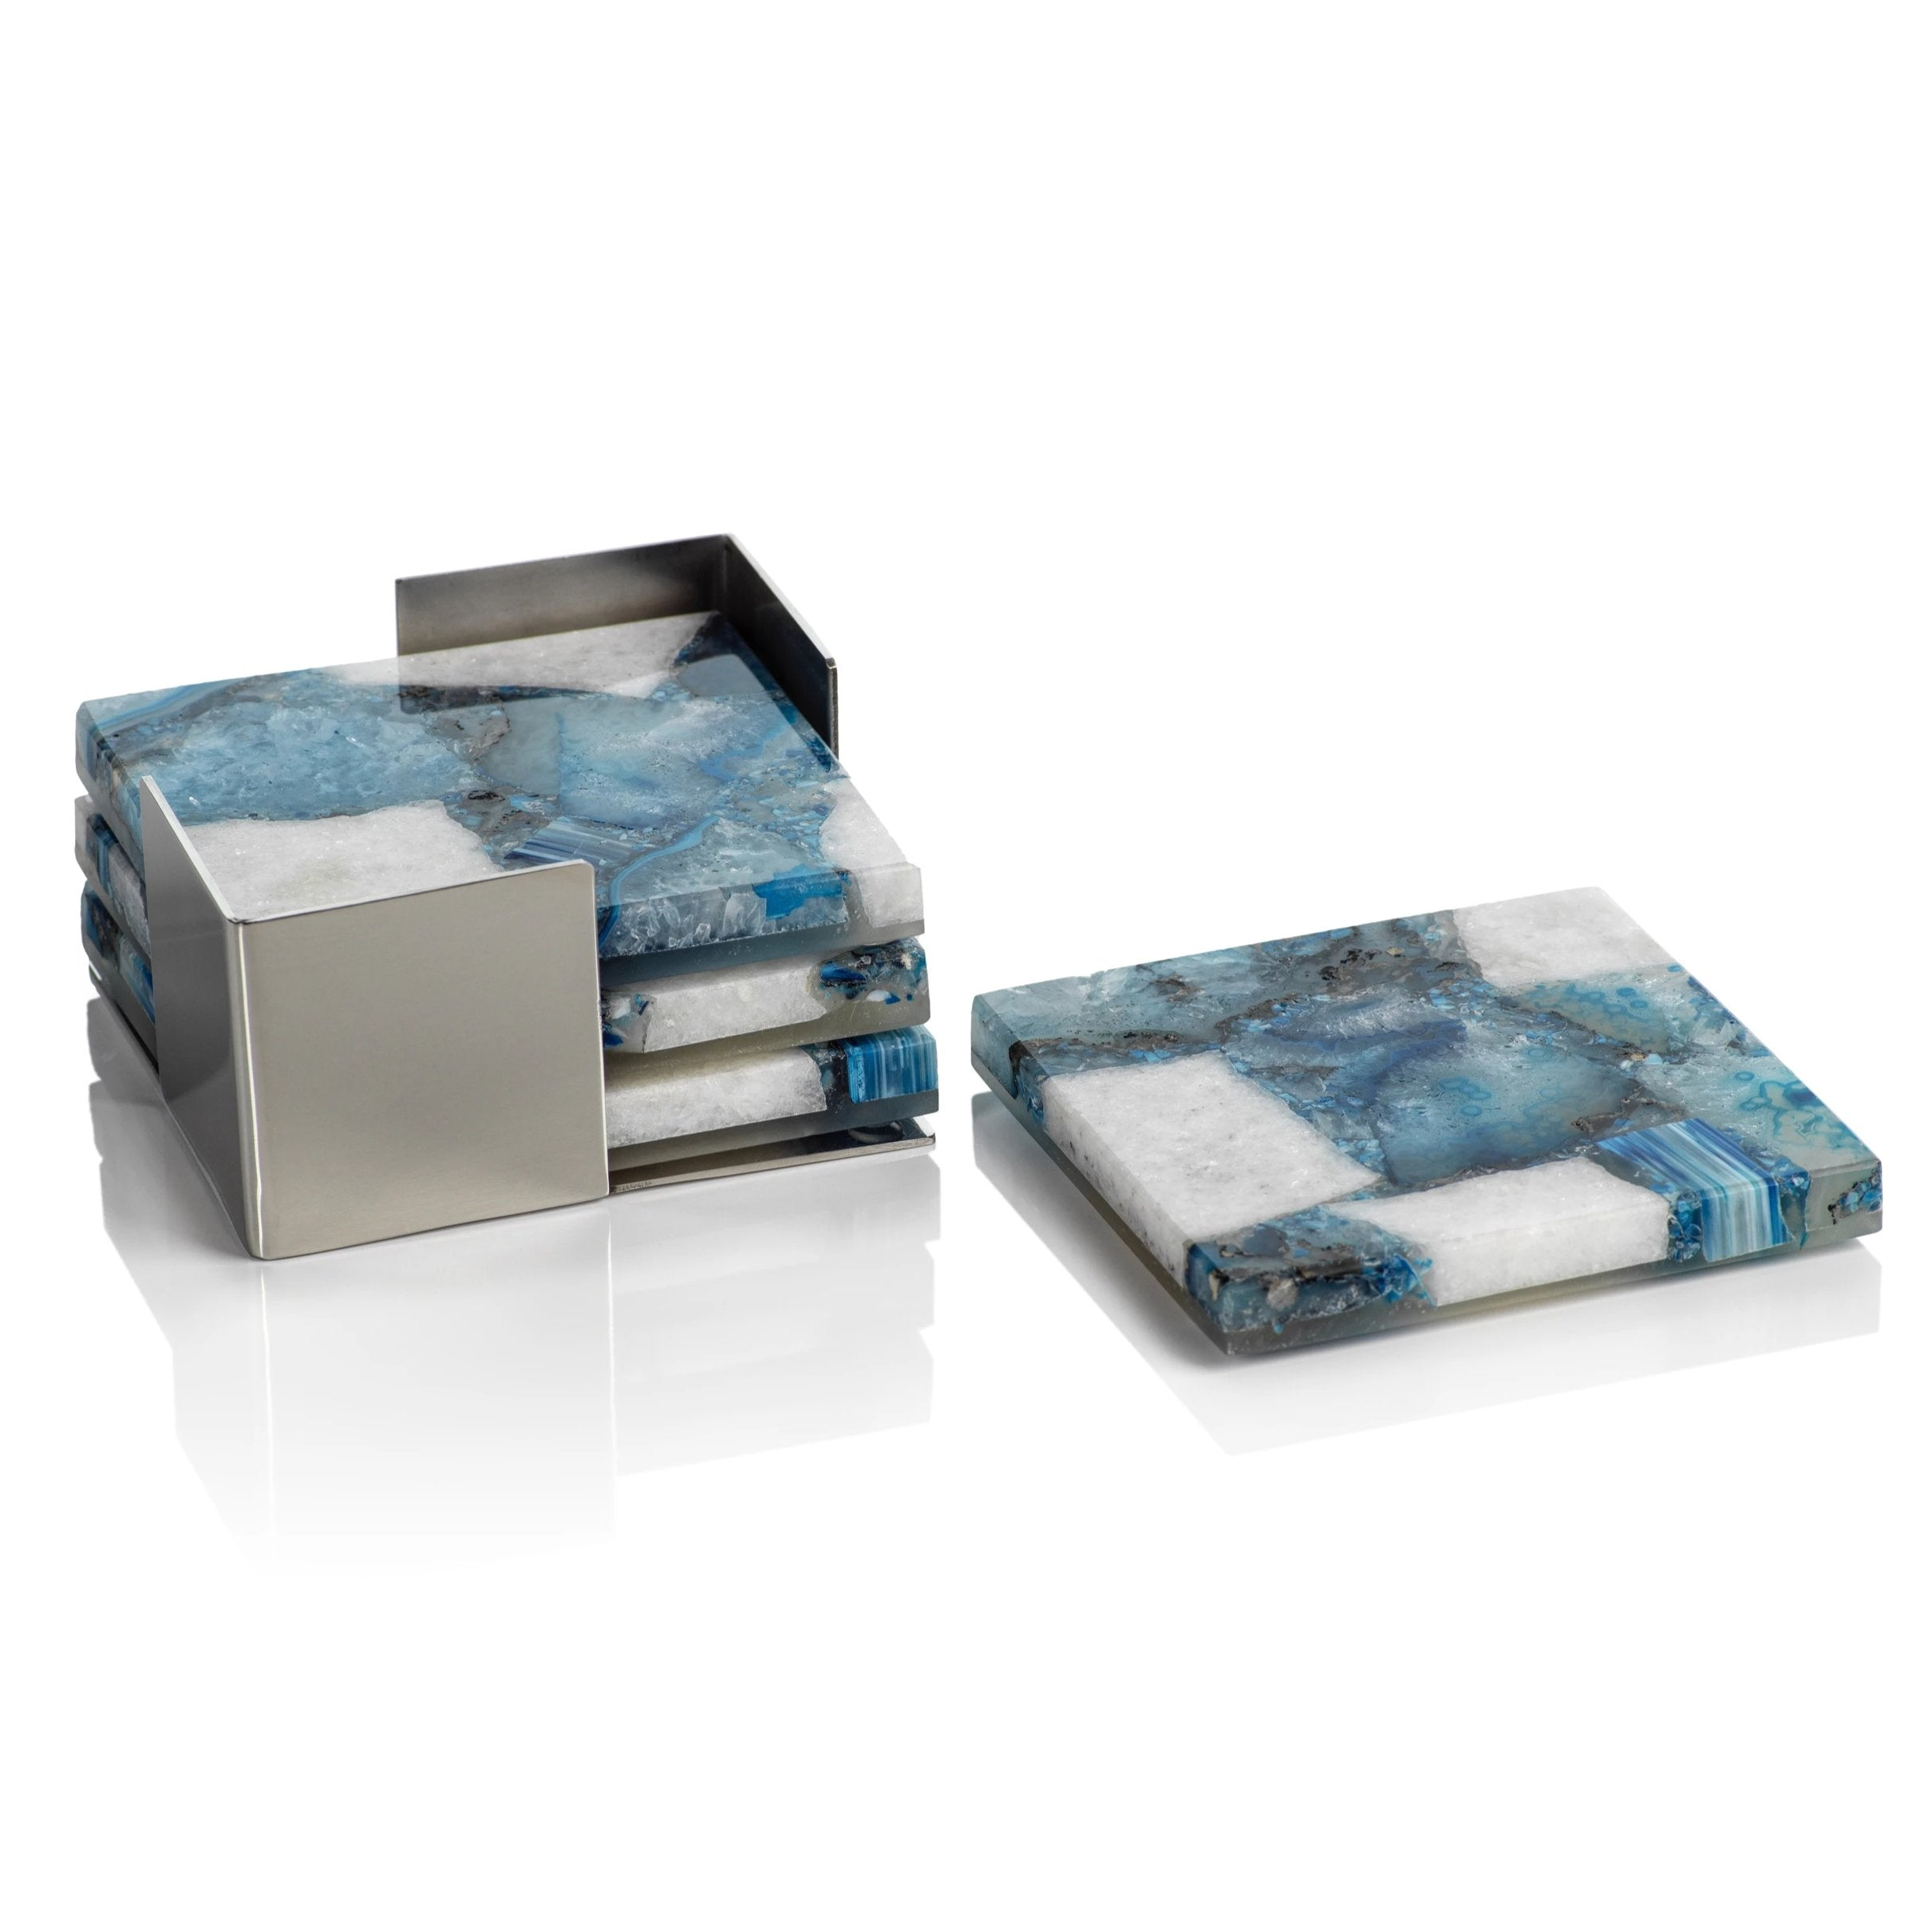 Set/4 Crete Agate Coasters on Metal Tray - Blue/White - CARLYLE AVENUE